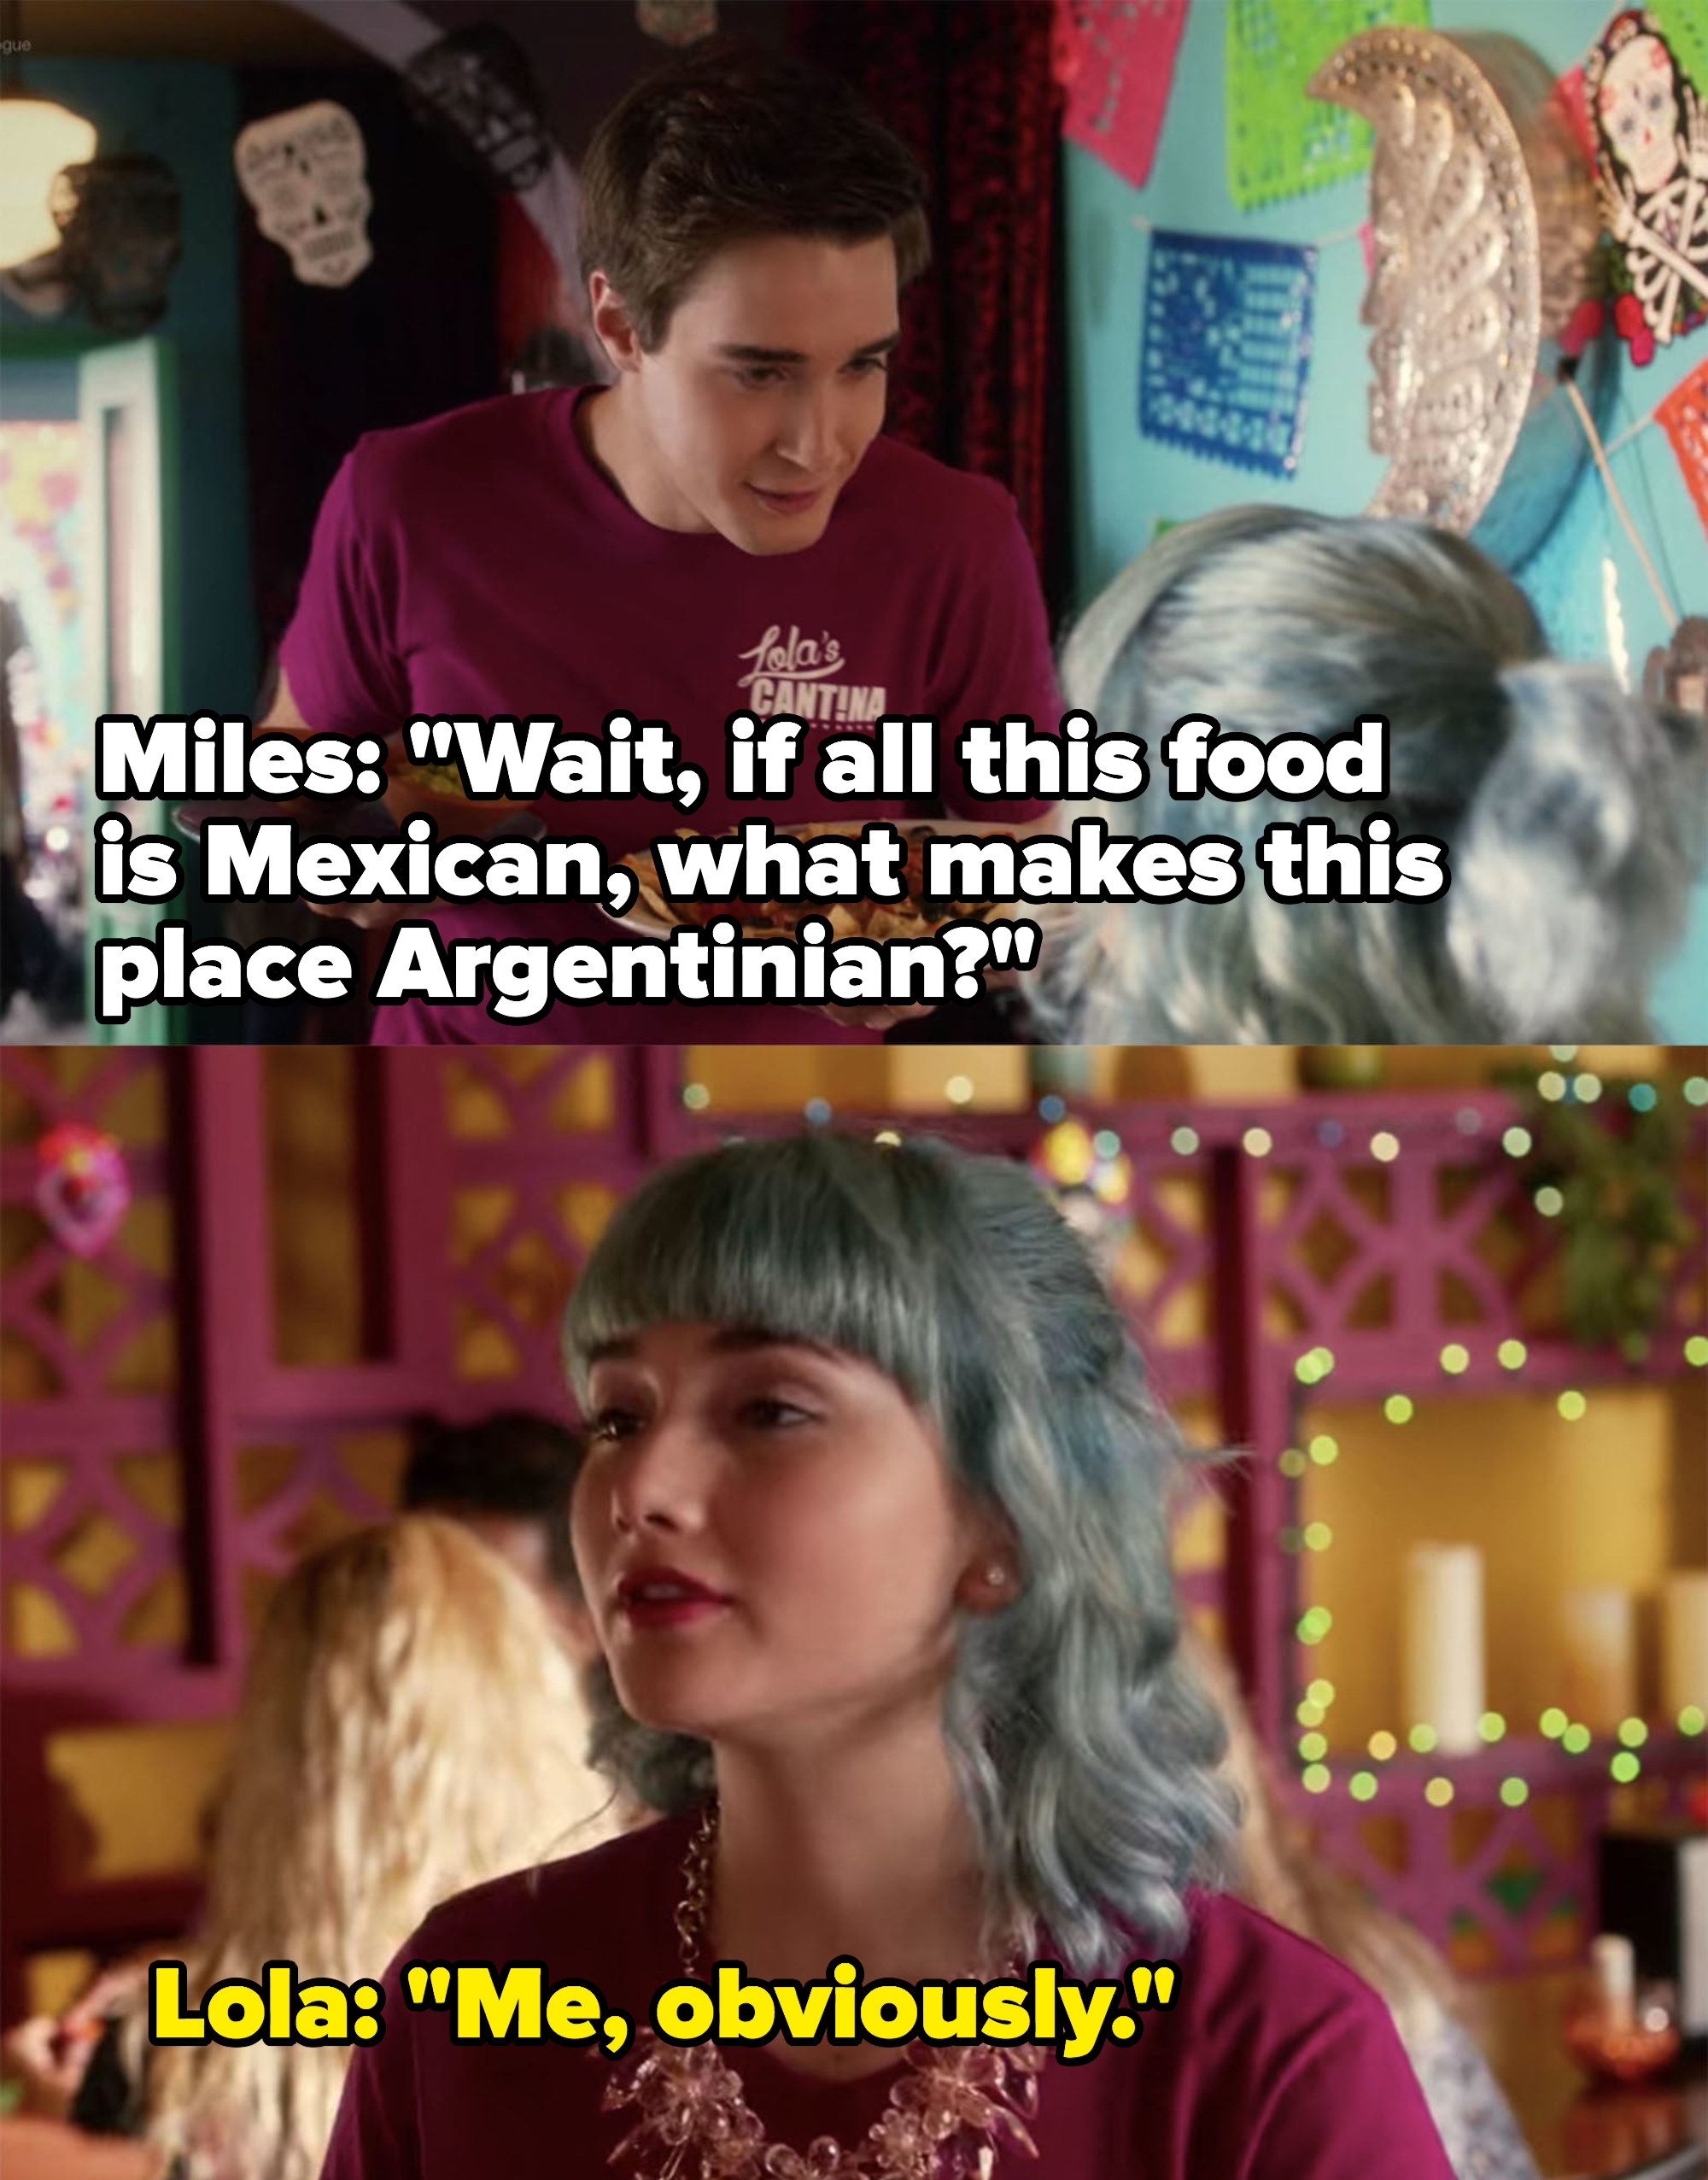 Lola says she's what makes her family's restaurant Argentinian